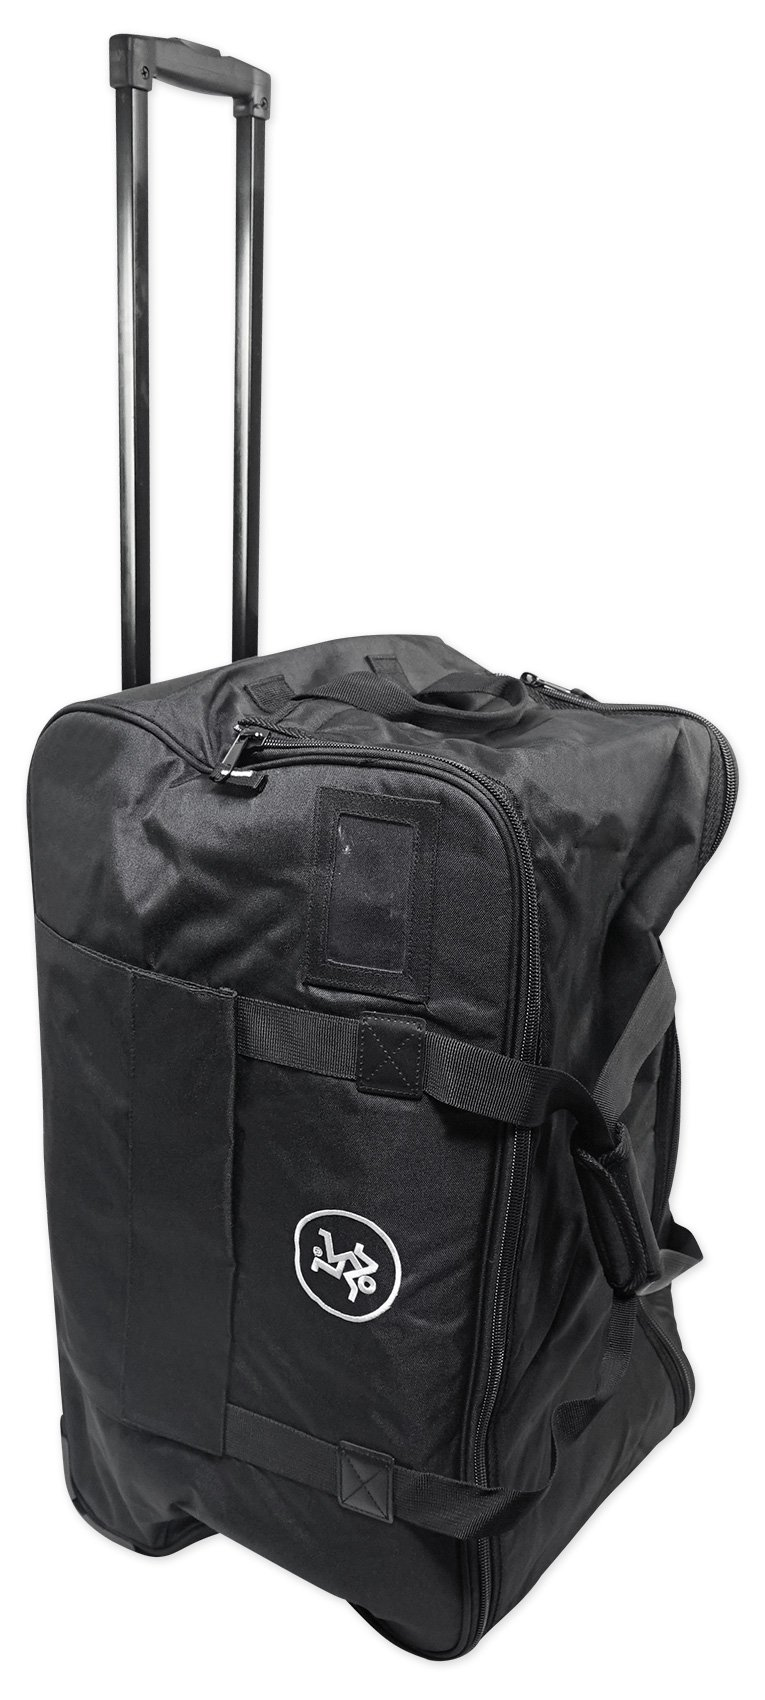 Mackie Thump12A/BST Rolling Bag Speaker Case by Mackie